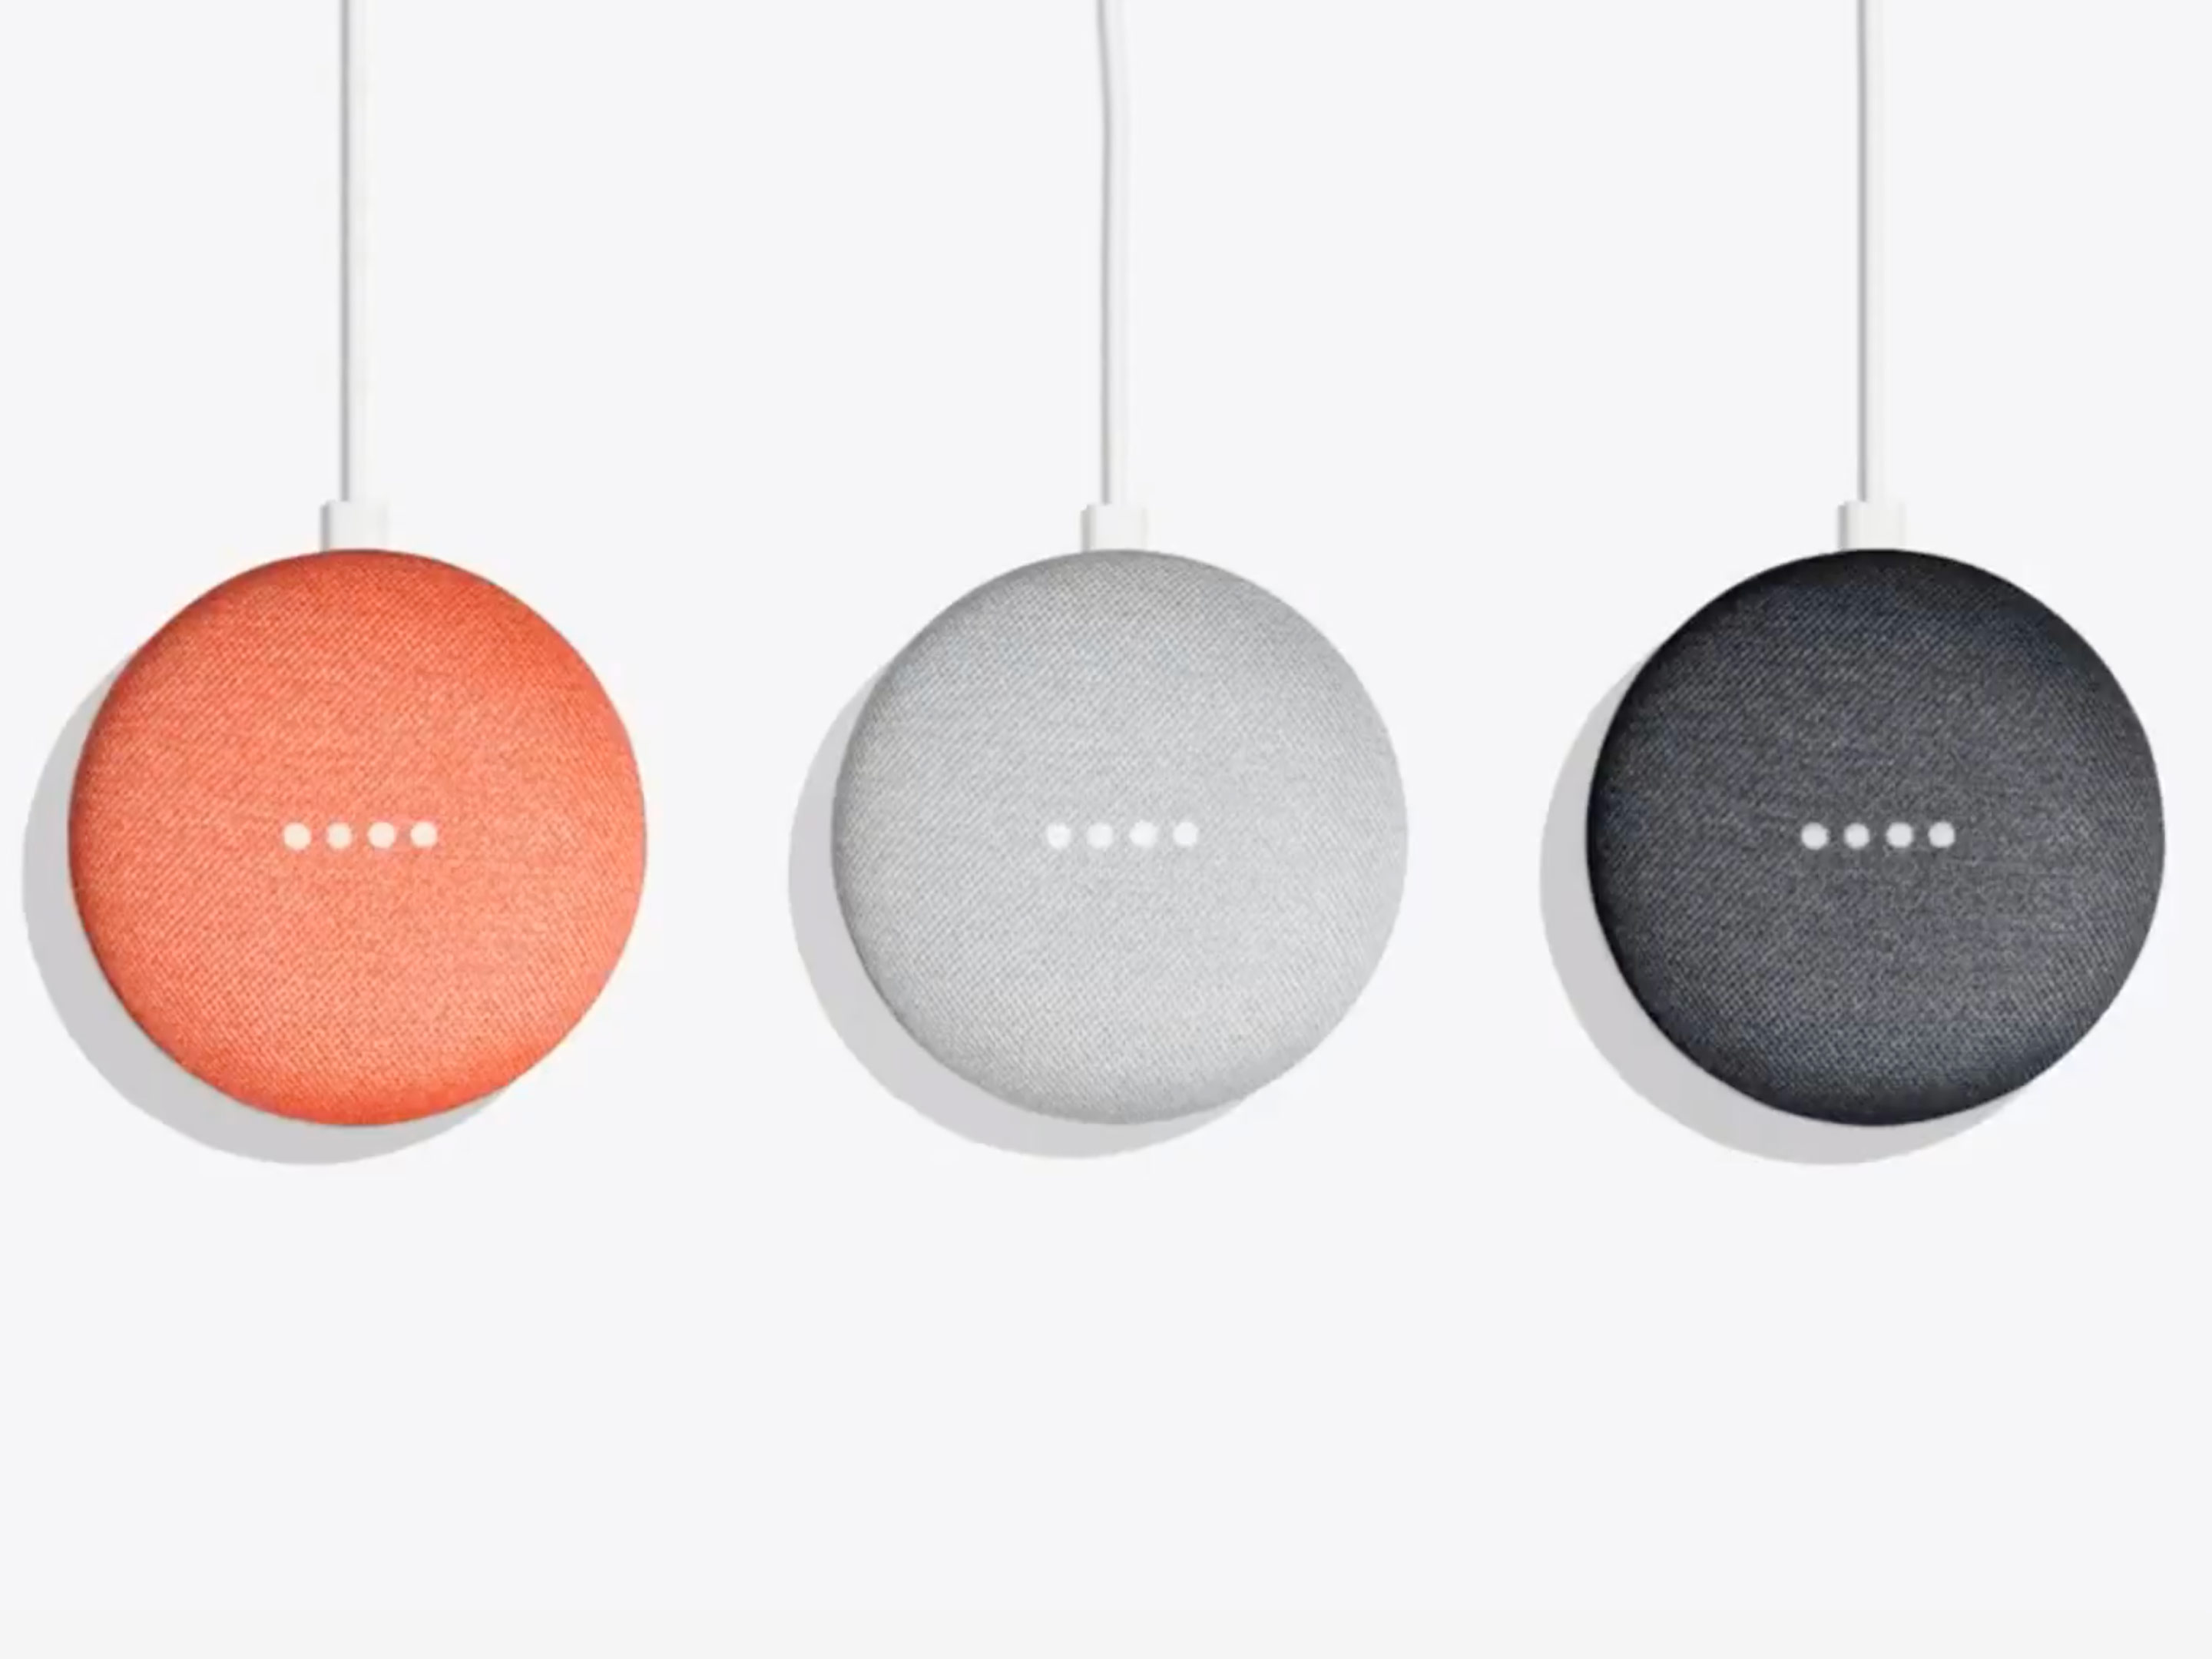 Google launches Google Home Min and Max